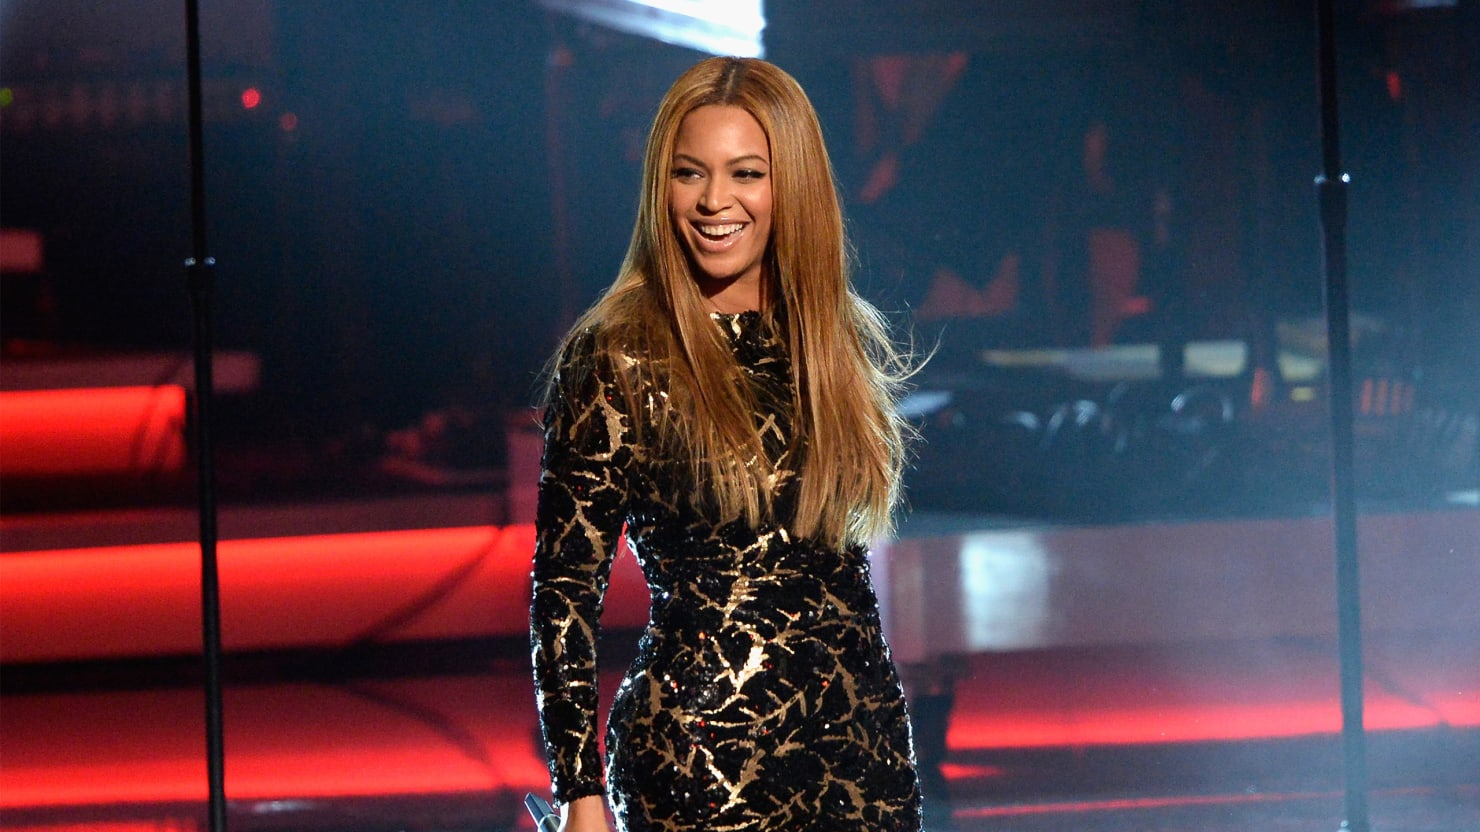 The Undoctored Truth About Beyoncé's Beauty: Is Fashion Getting Real?